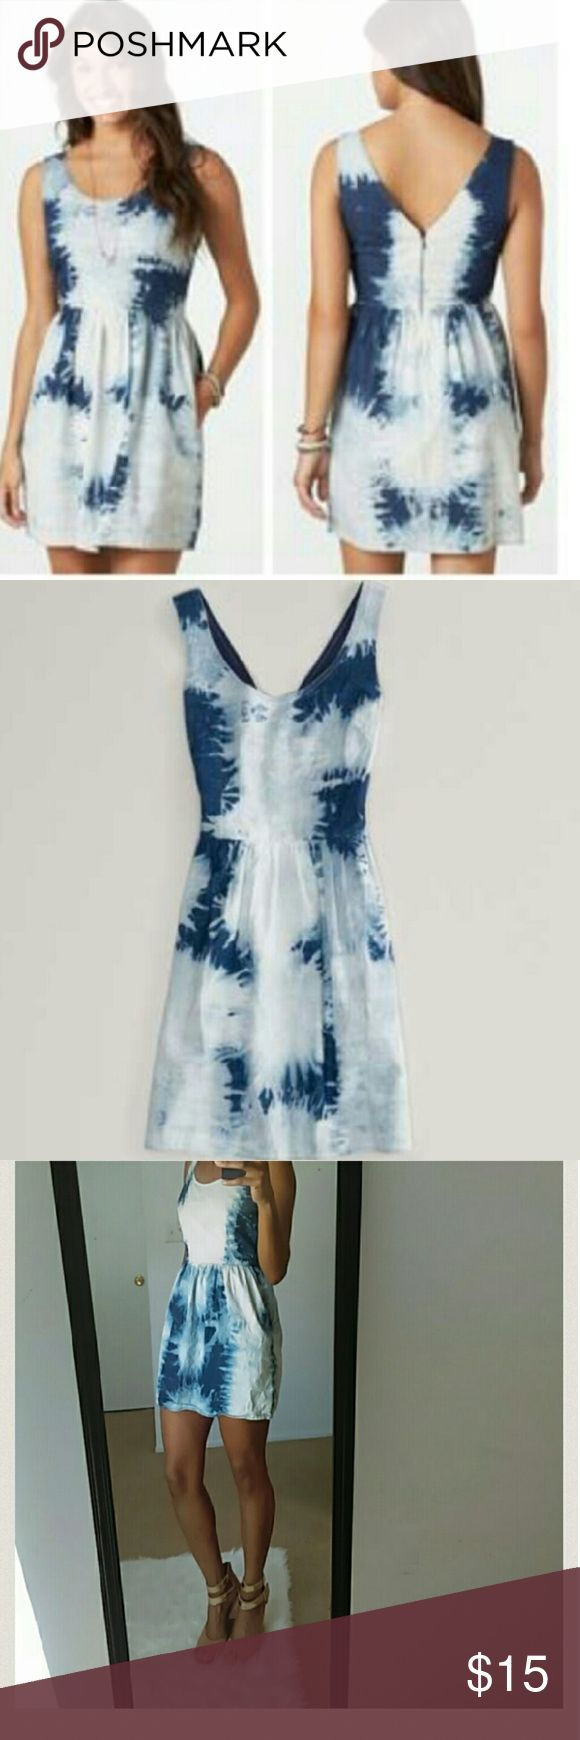 American Eagle Outfitters Dresses sale 1 hr🎊🎉 American Eagle Outfitters Dresses & Skirts - AE tie dye denim dressute and girly. Fits 0-2 American Eagle Outfitters Dresses Mini